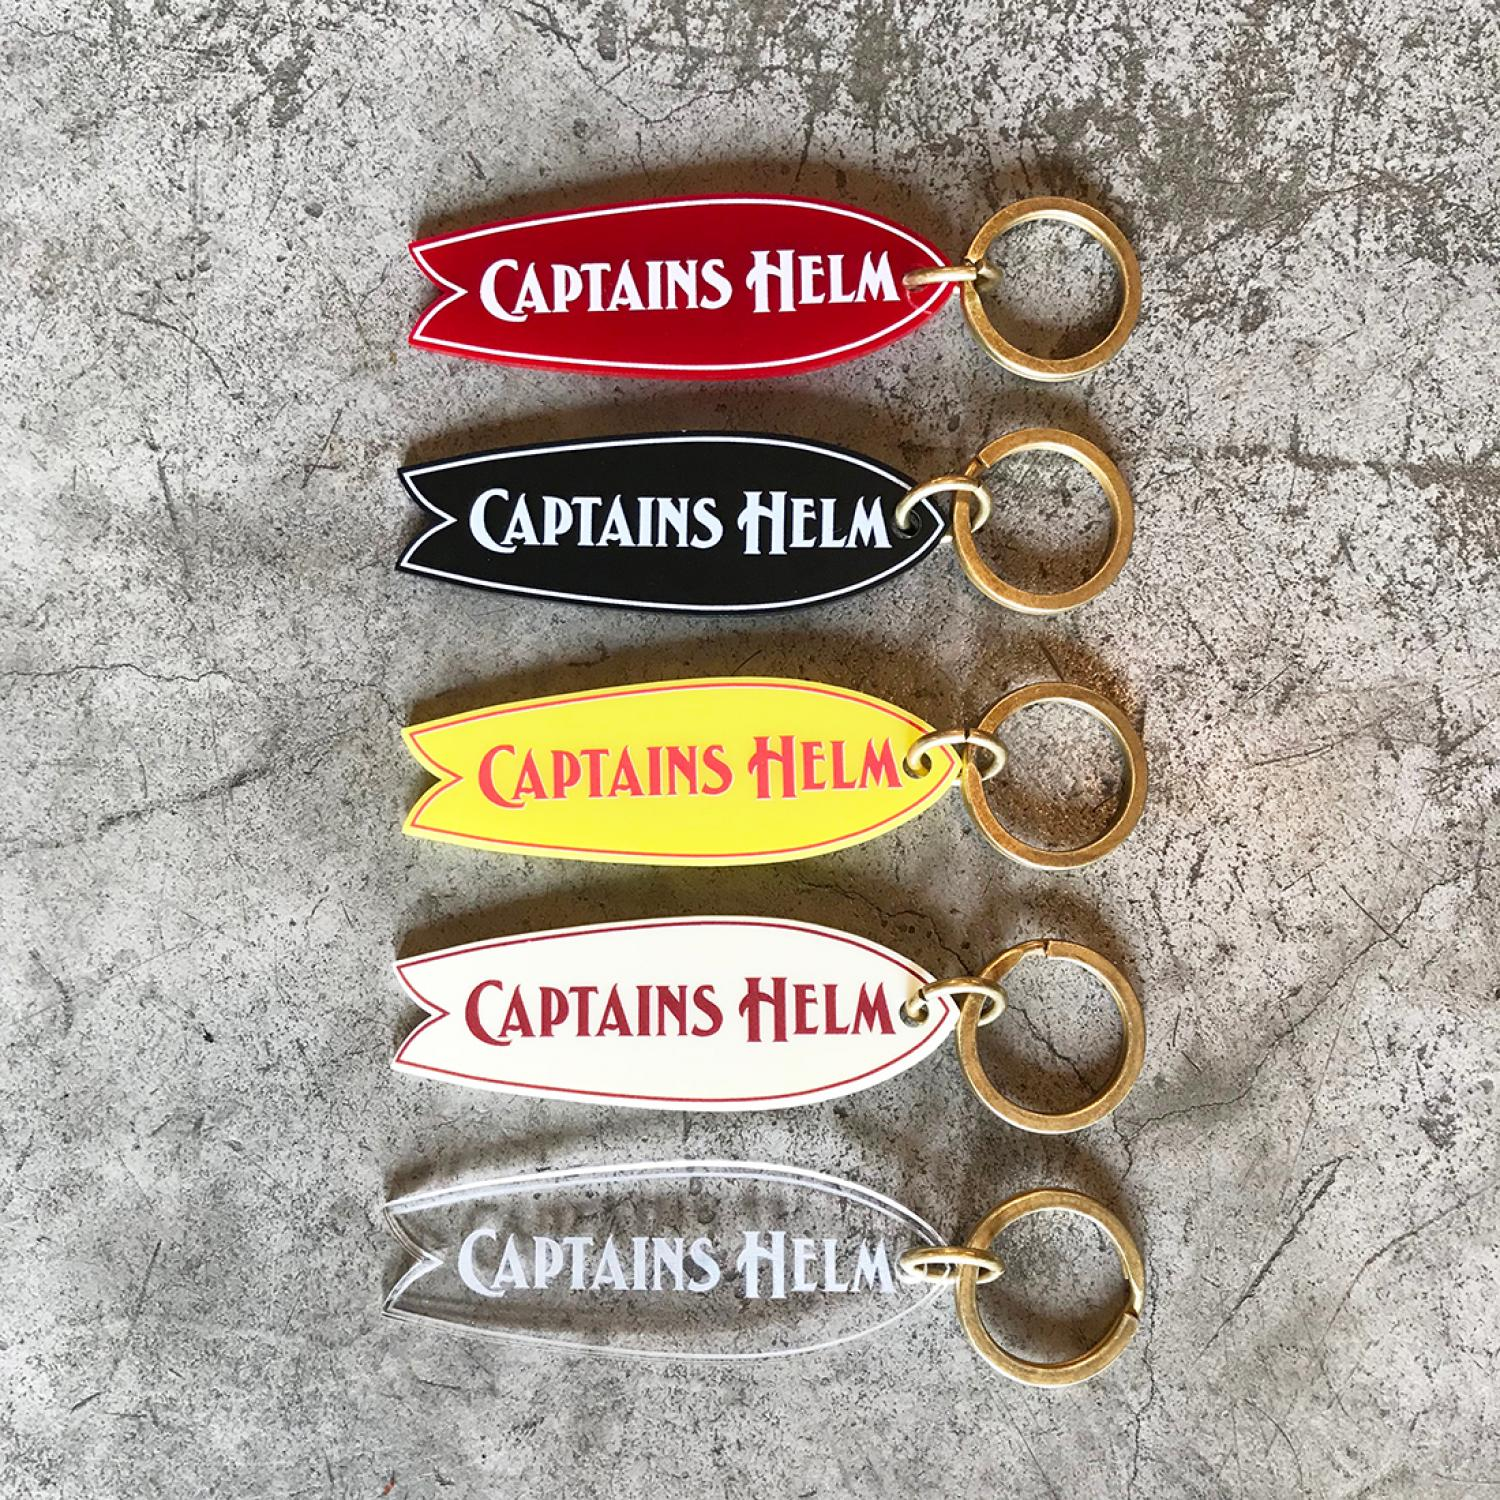 CAPTAINS HELM FISH KEY TAG